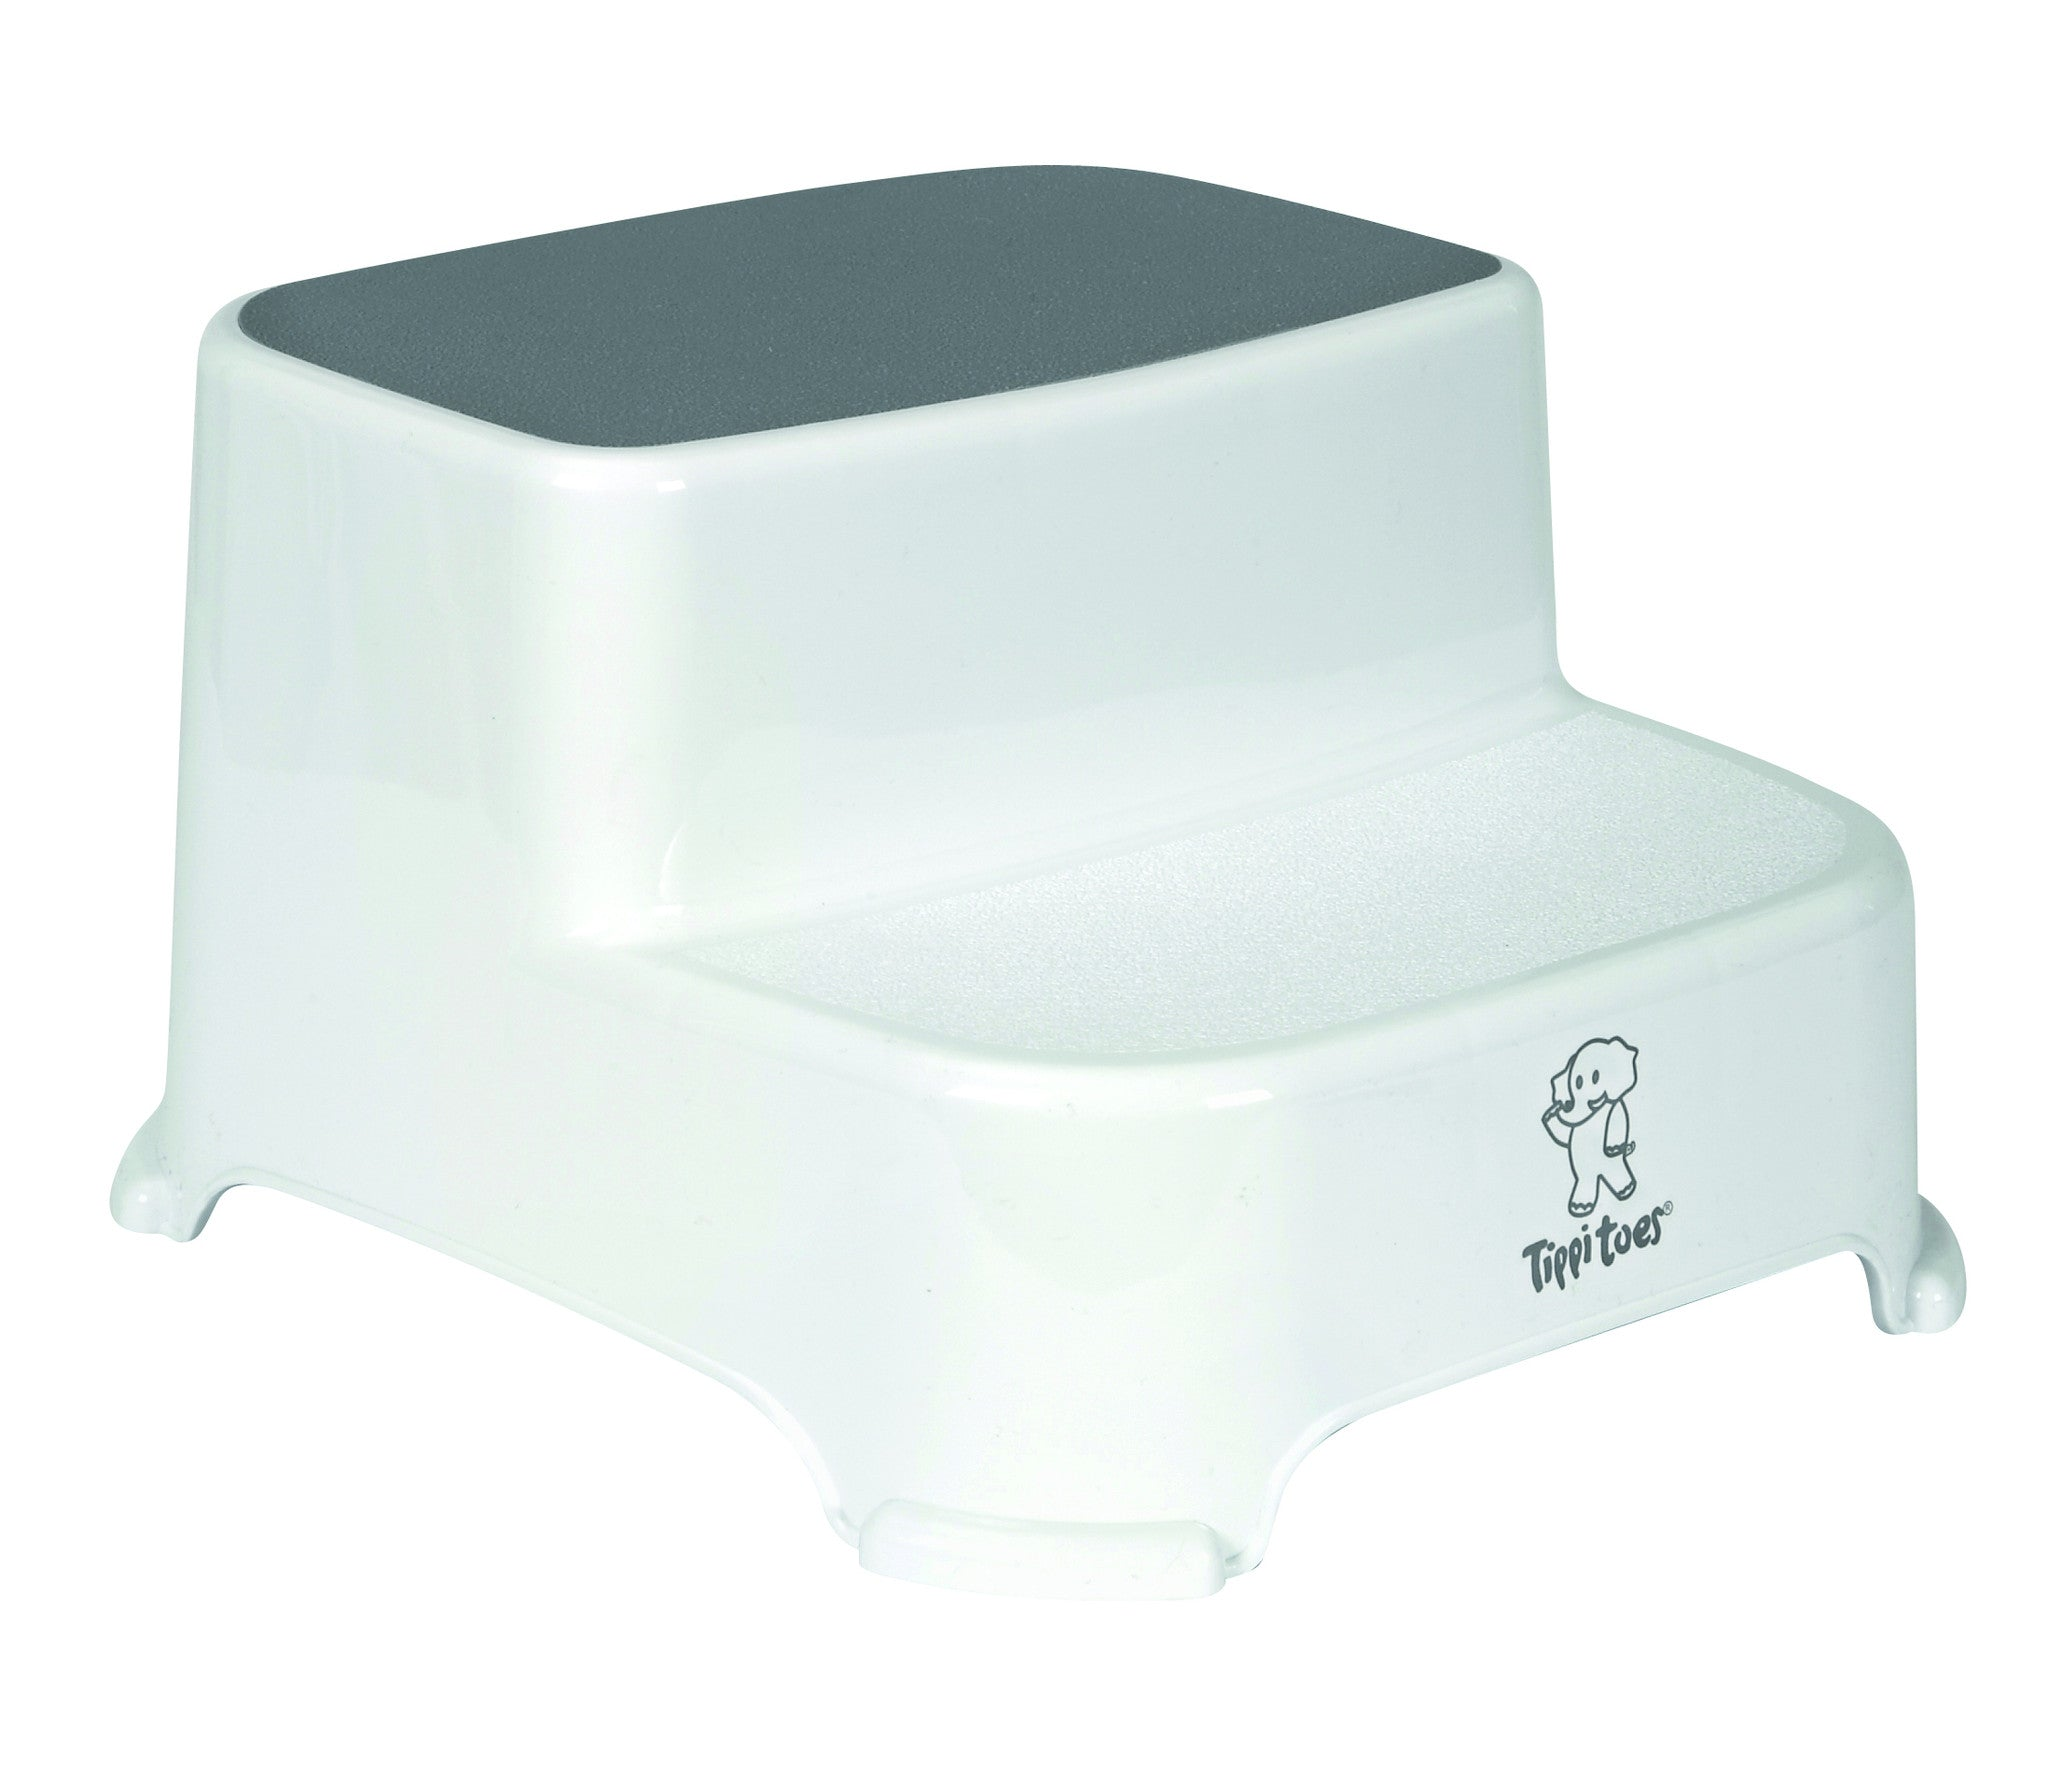 Tippitoes Double Step Up Stool - Grey - buybaby.co.uk  sc 1 st  Tippitoes & Tippitoes Double Step Up Stool - Grey - buybaby islam-shia.org